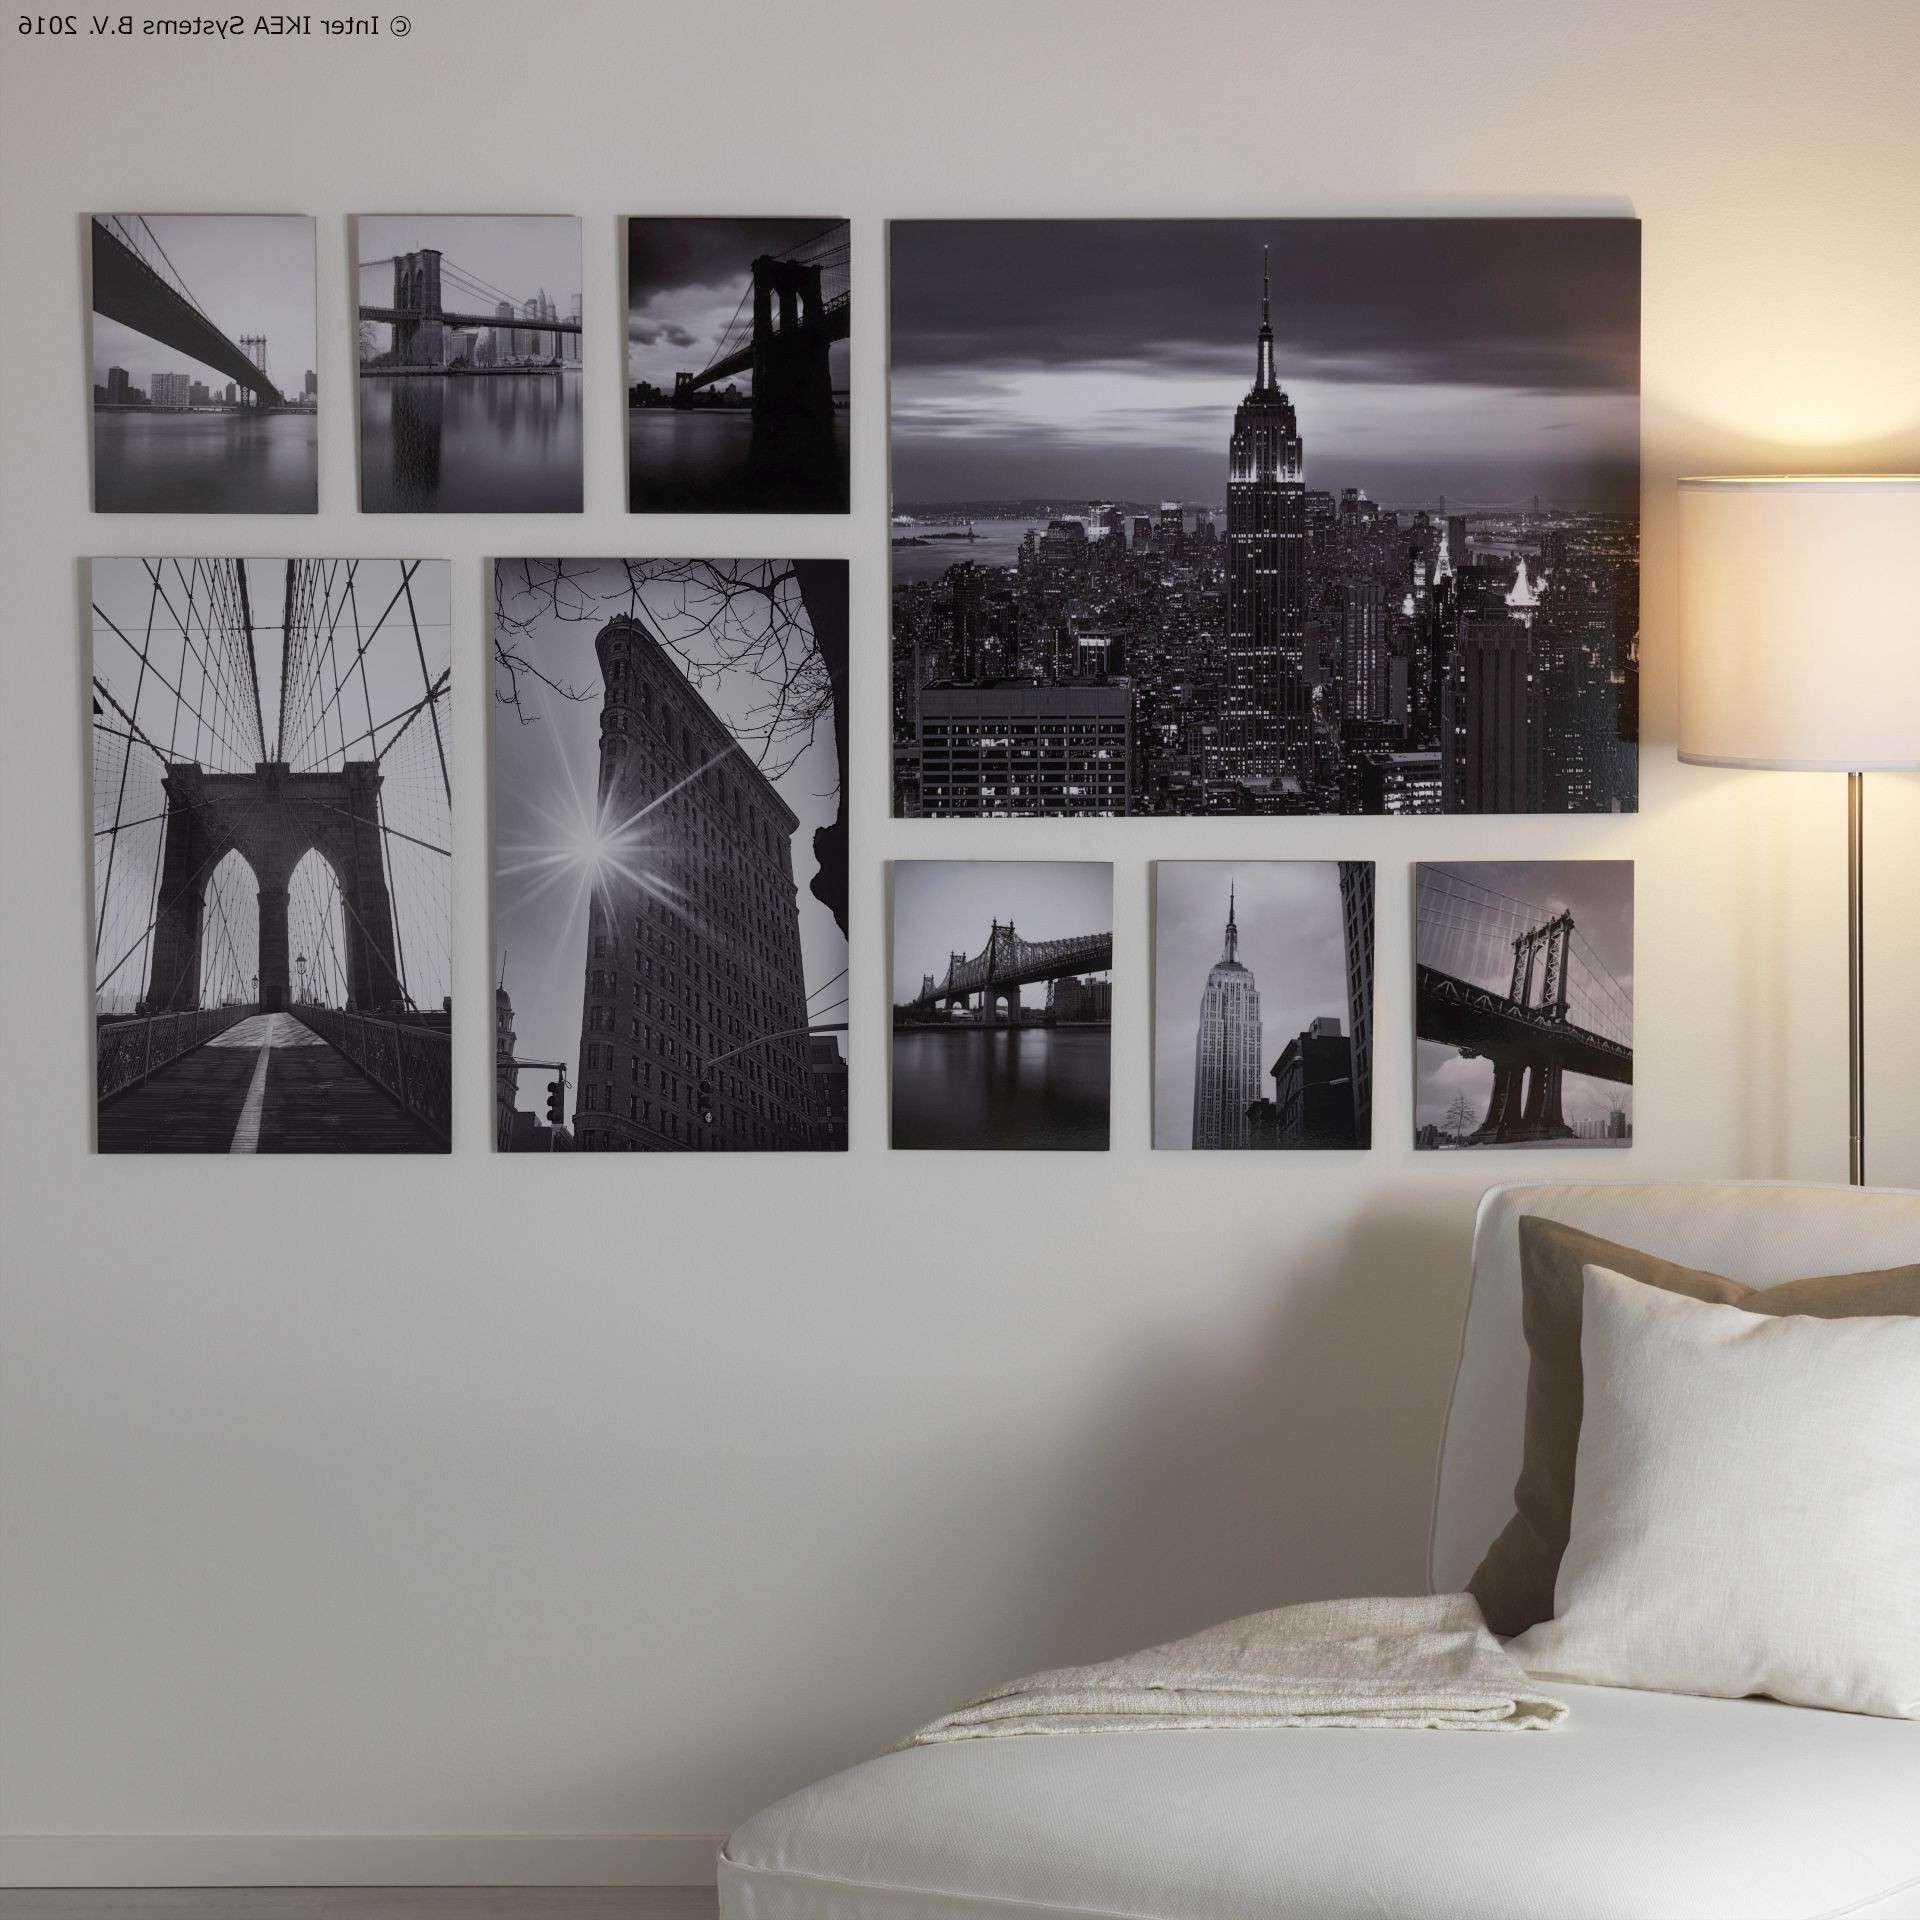 Fashionable Big Wall Posters For Bedroom Elegant 36 New Horizontal Wall Art With Horizontal Wall Art (View 7 of 20)